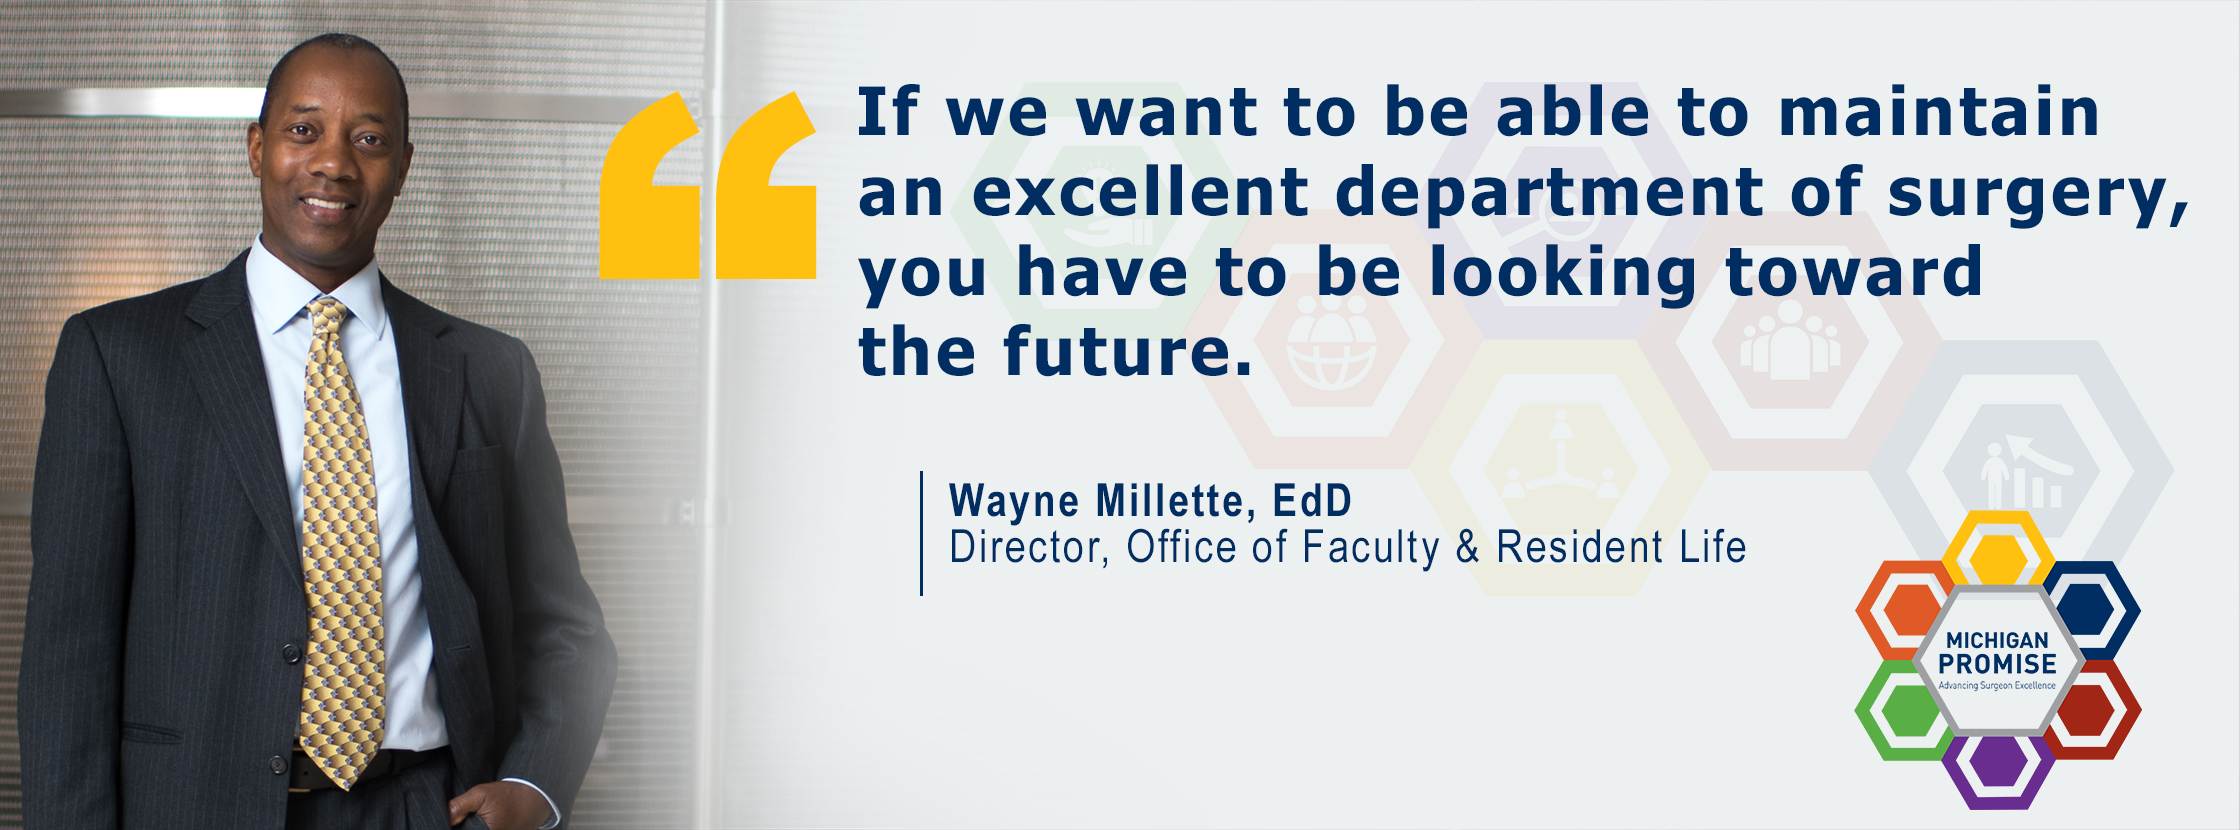 """If we want to be able to maintain an excellent department of surgery, you have to be looking towards the future."" Wayne Millette EdD, Director, Office of Faculty & Resident Life"